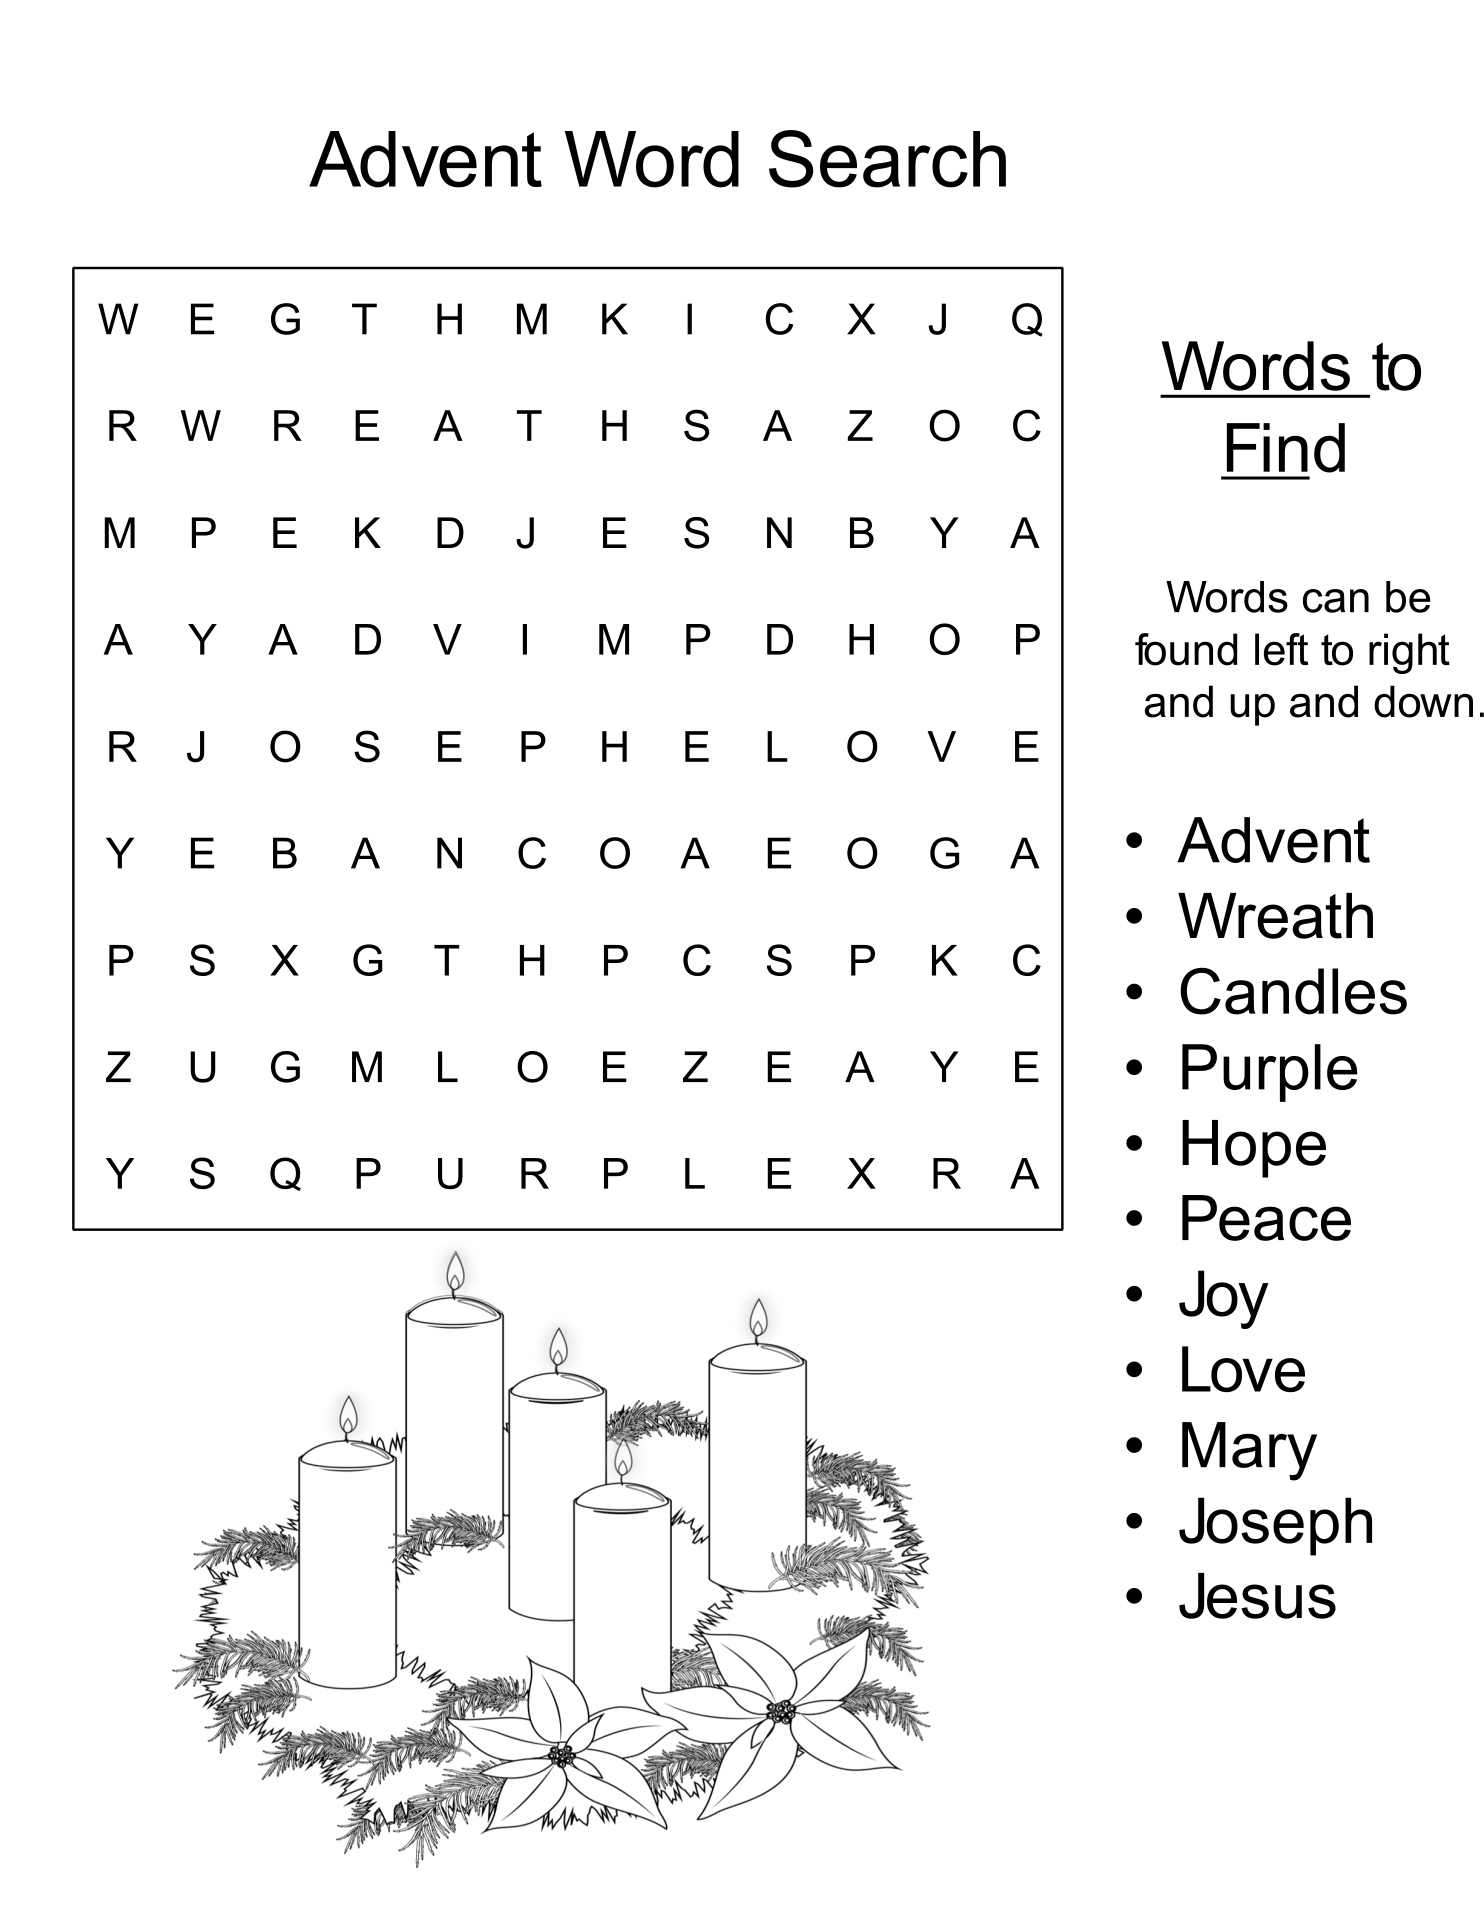 Advent Word Search Puzzle